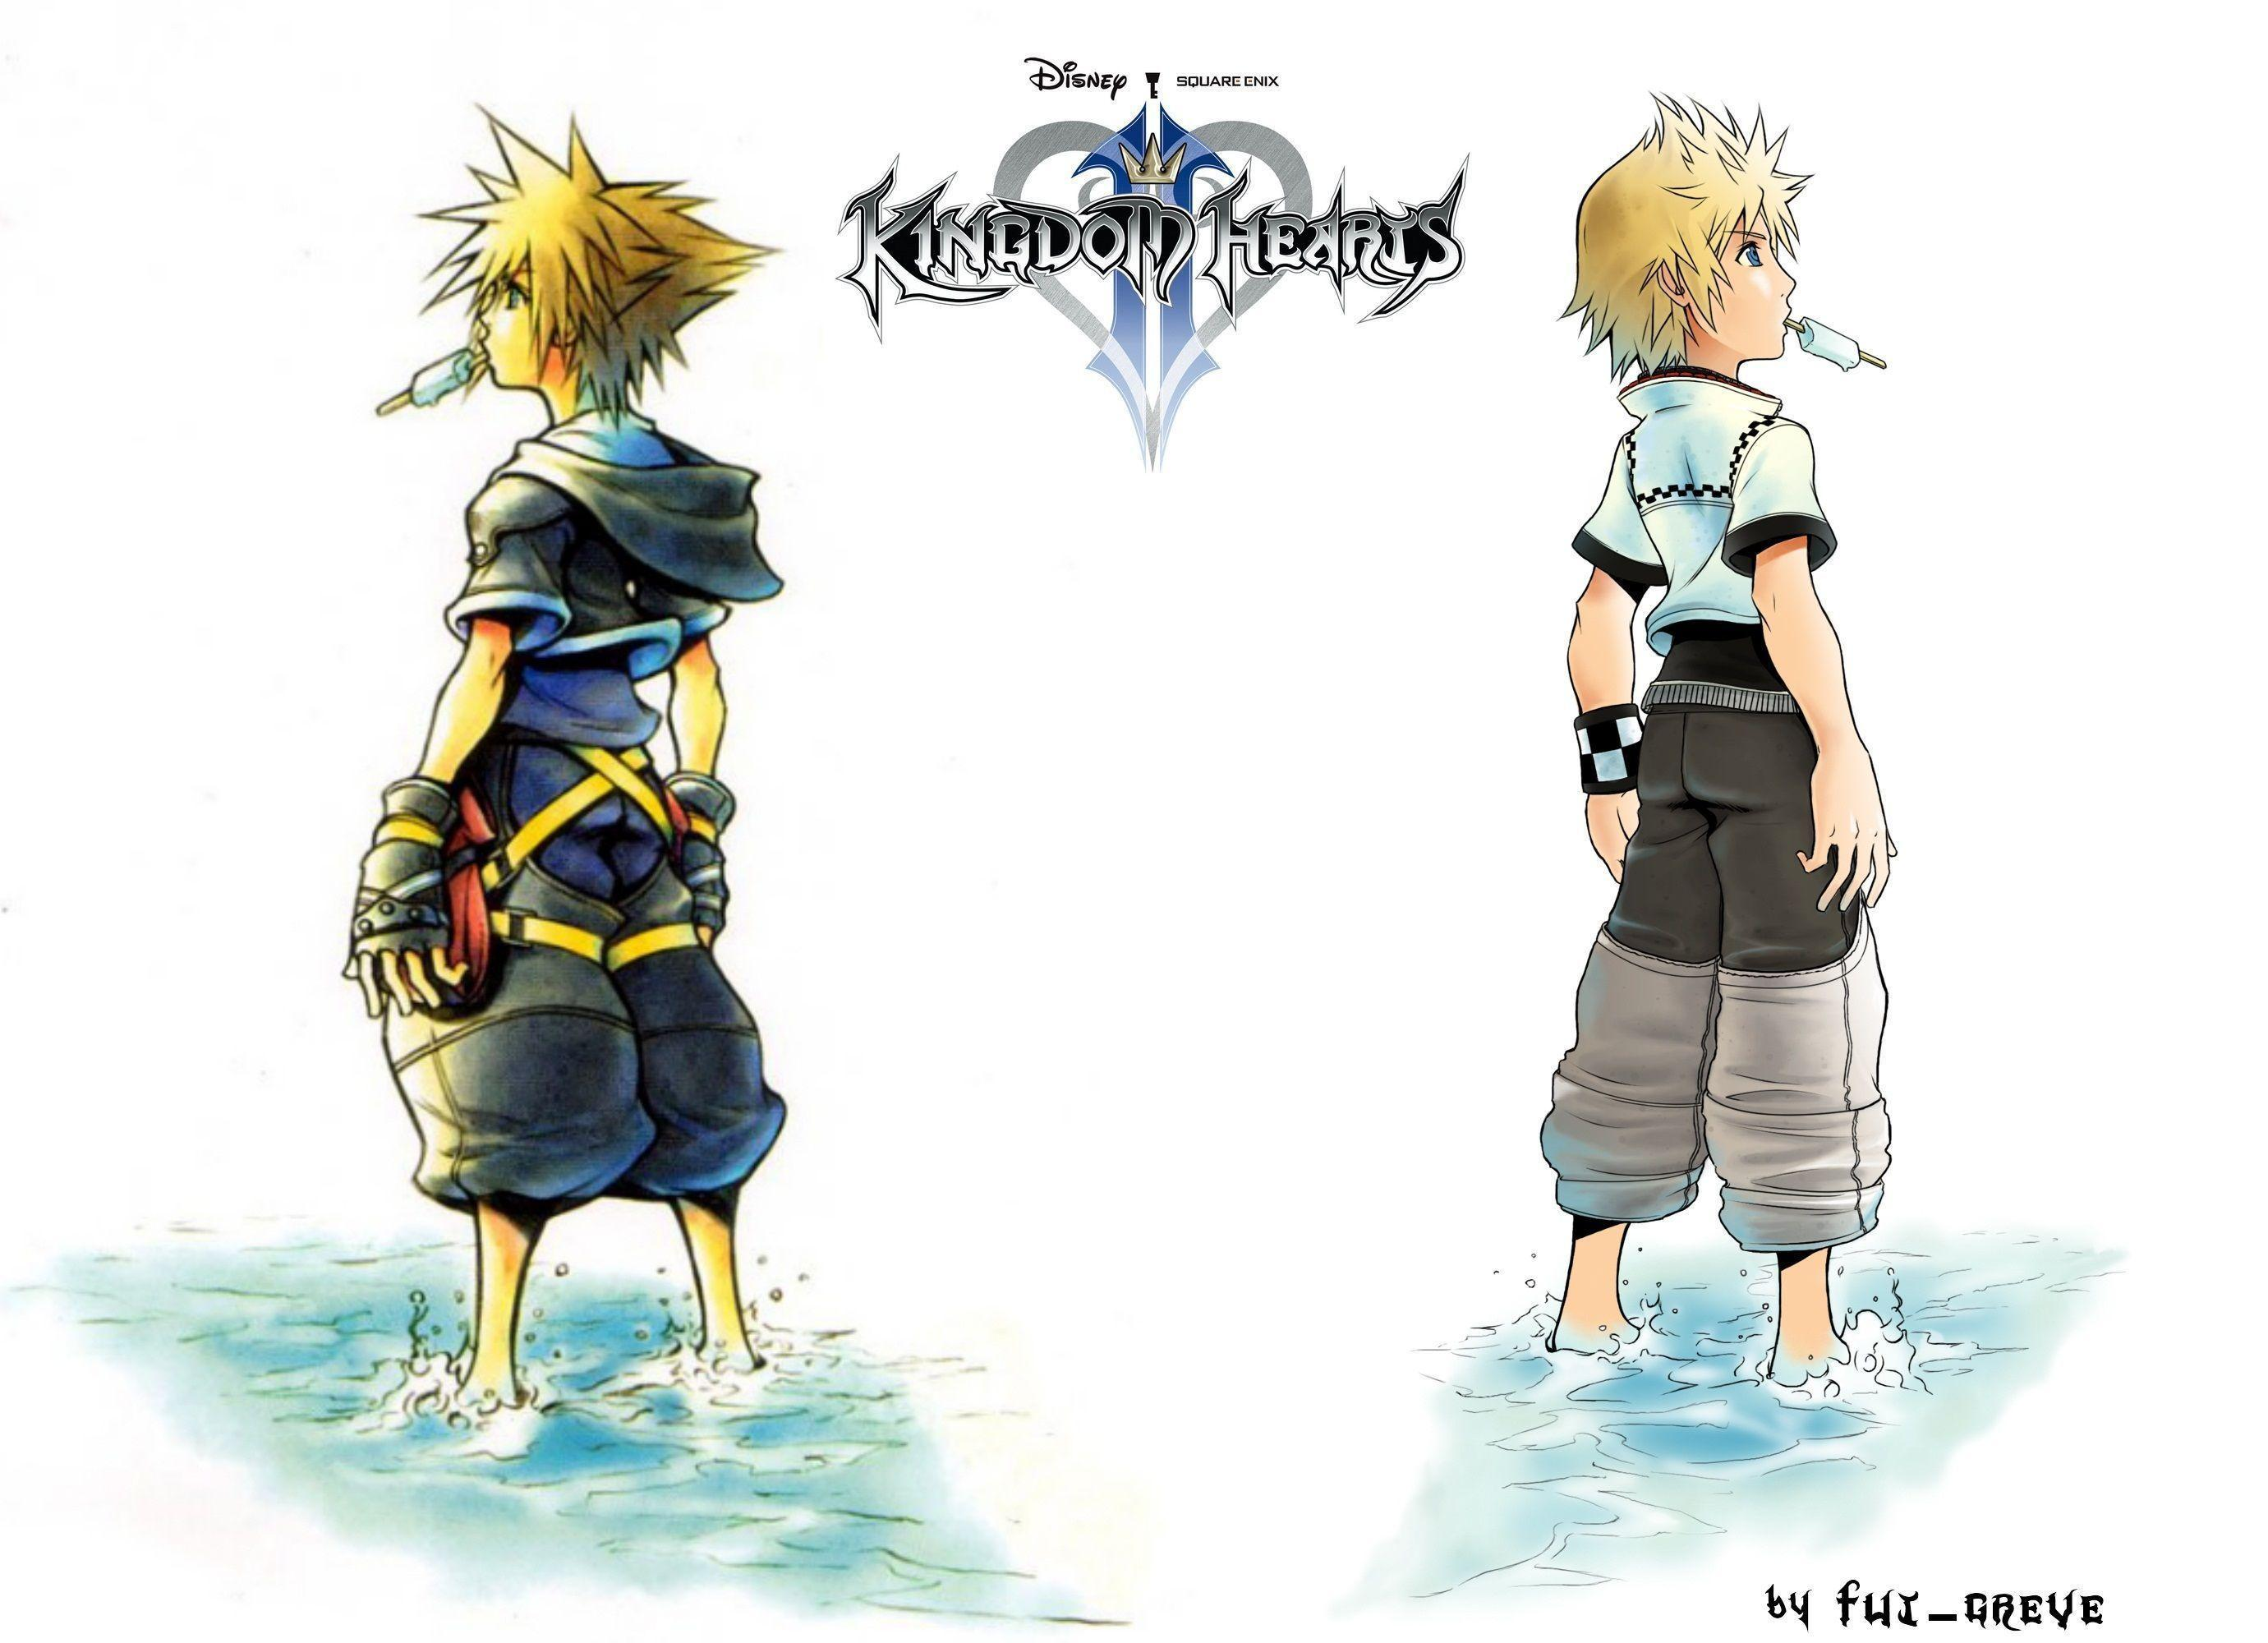 Kingdom Hearts Sora Wallpaper 1920x1080 Kingdom Hearts Sora Wa...